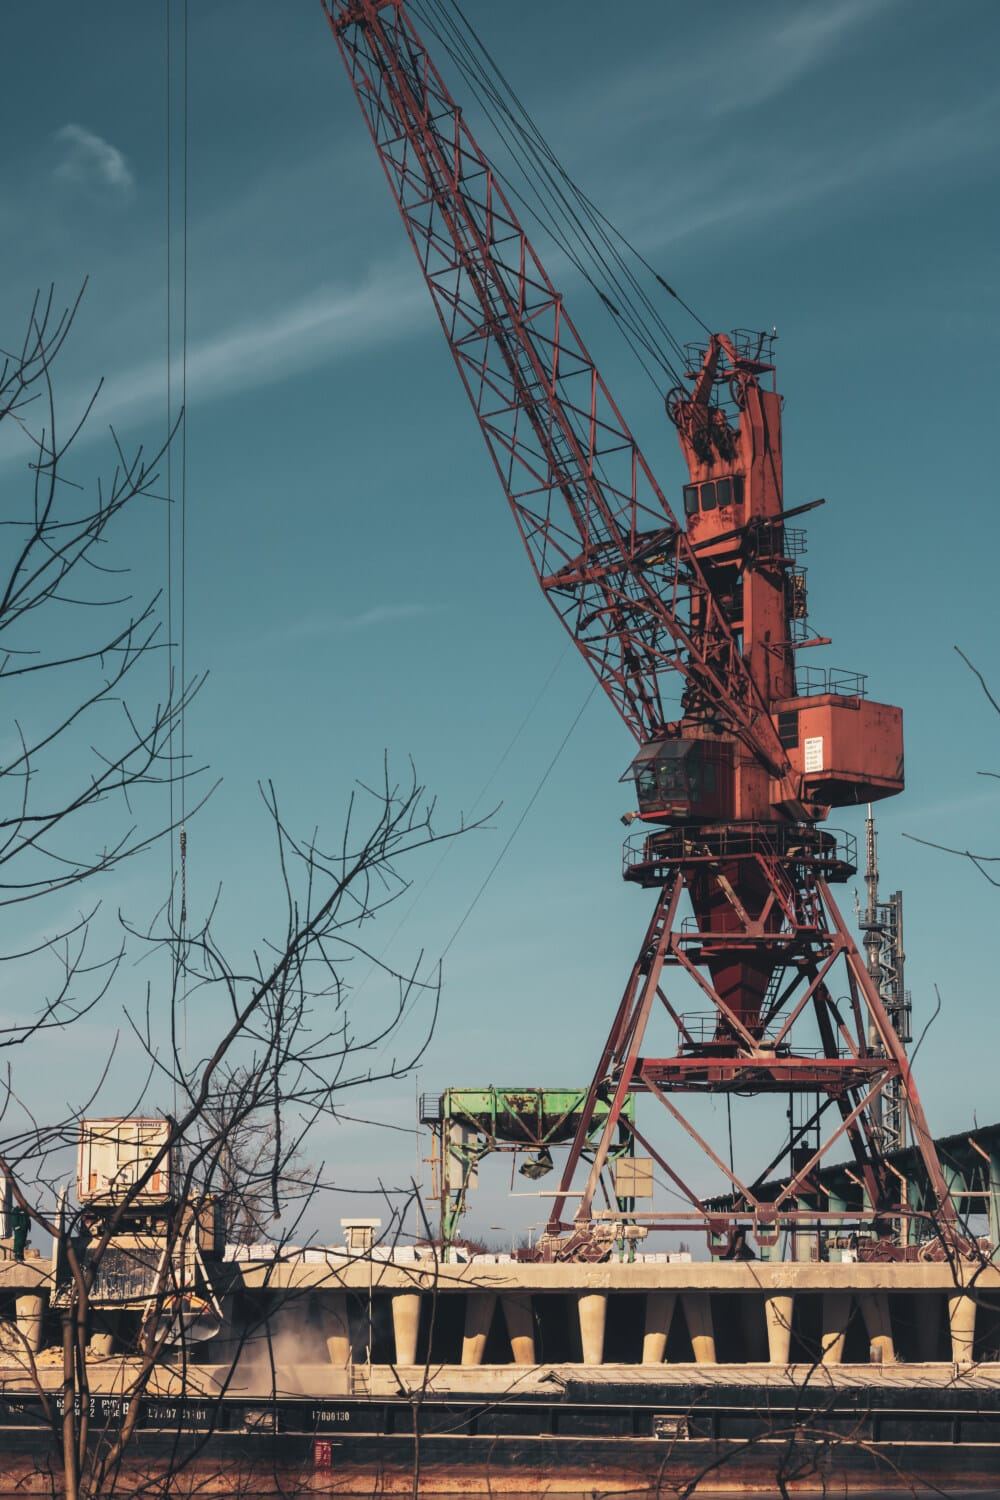 industrial, factory, construction, crane, heavy, steel, machinery, loader, cable, tower